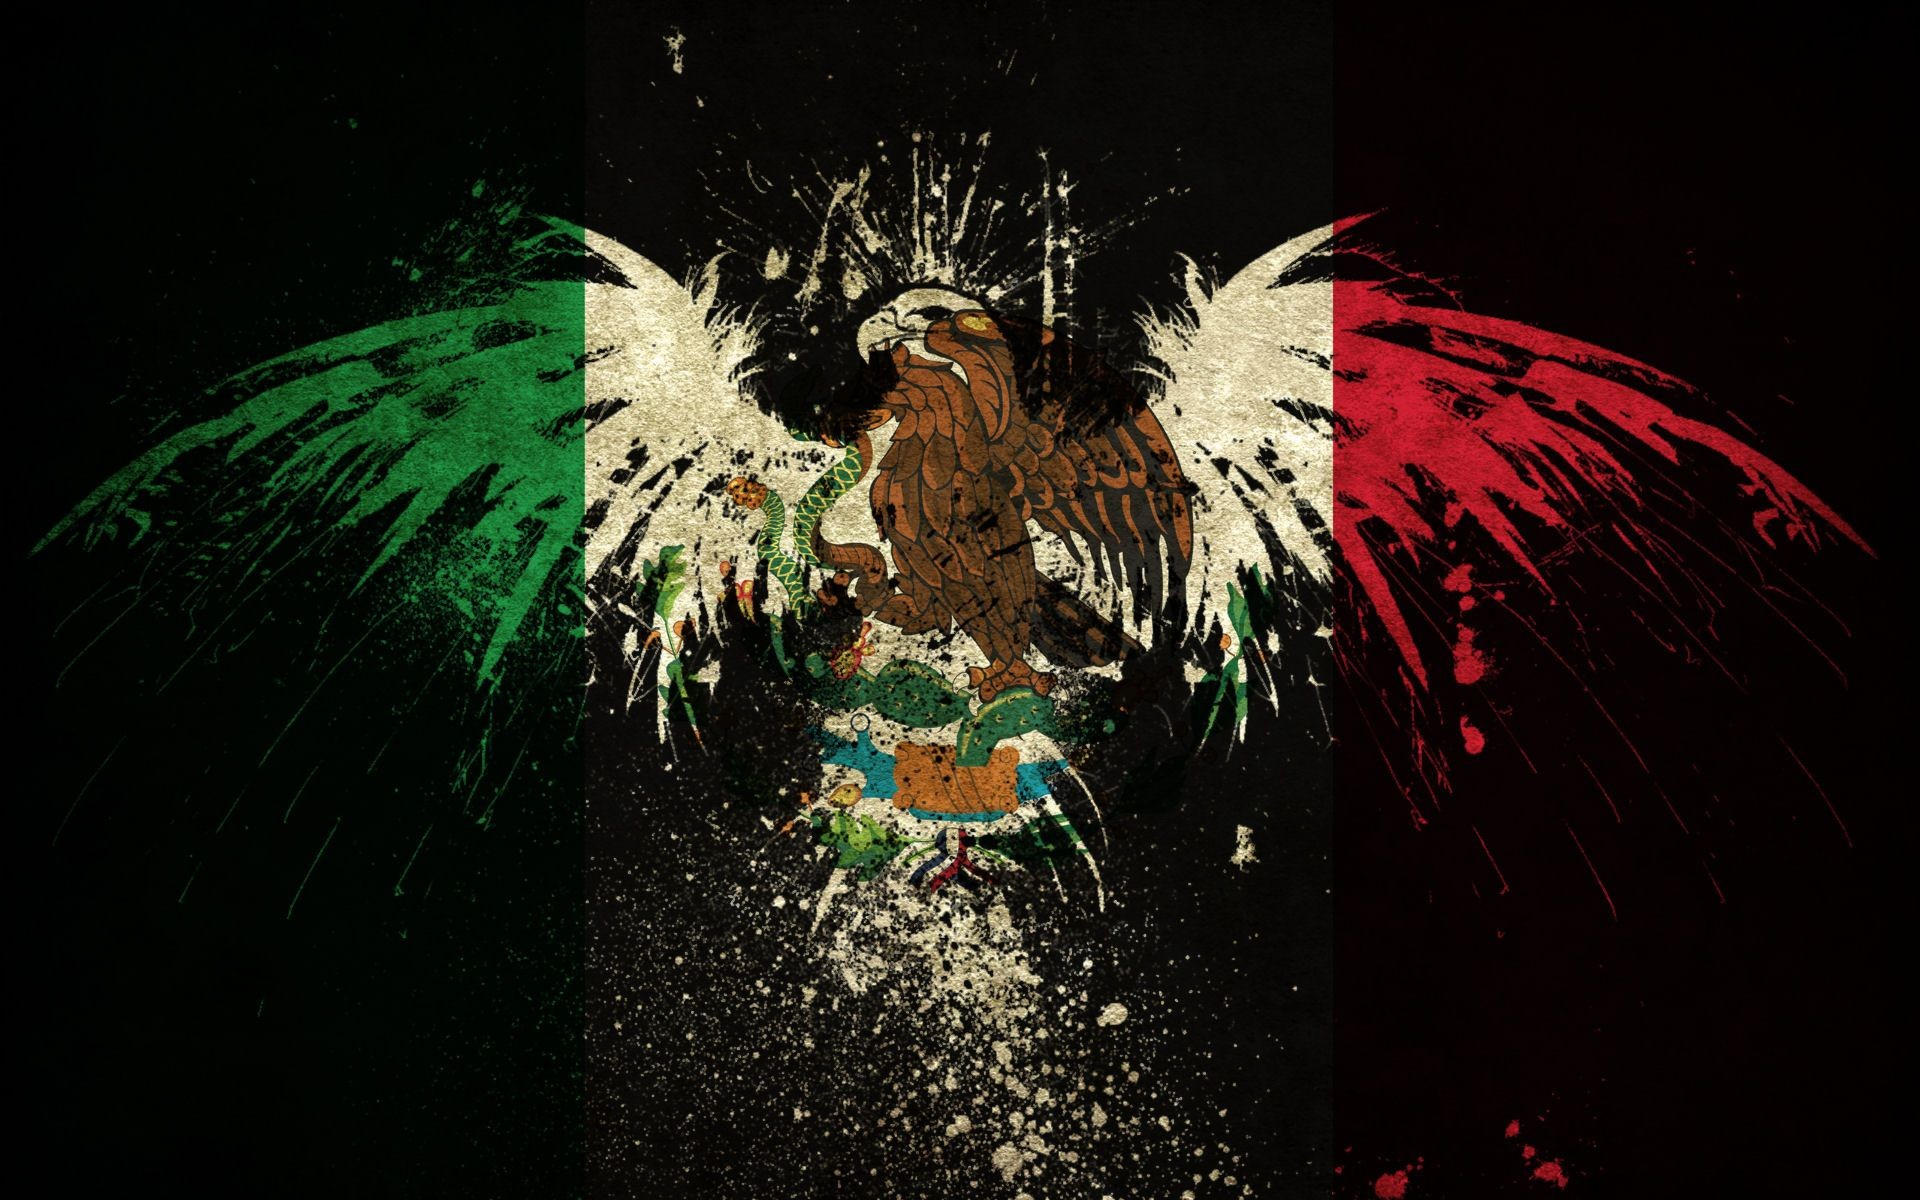 1920x1200 Amazing Mexico wallpaper x | HD Wallpapers | Pinterest | Wallpaper and City  wallpaper